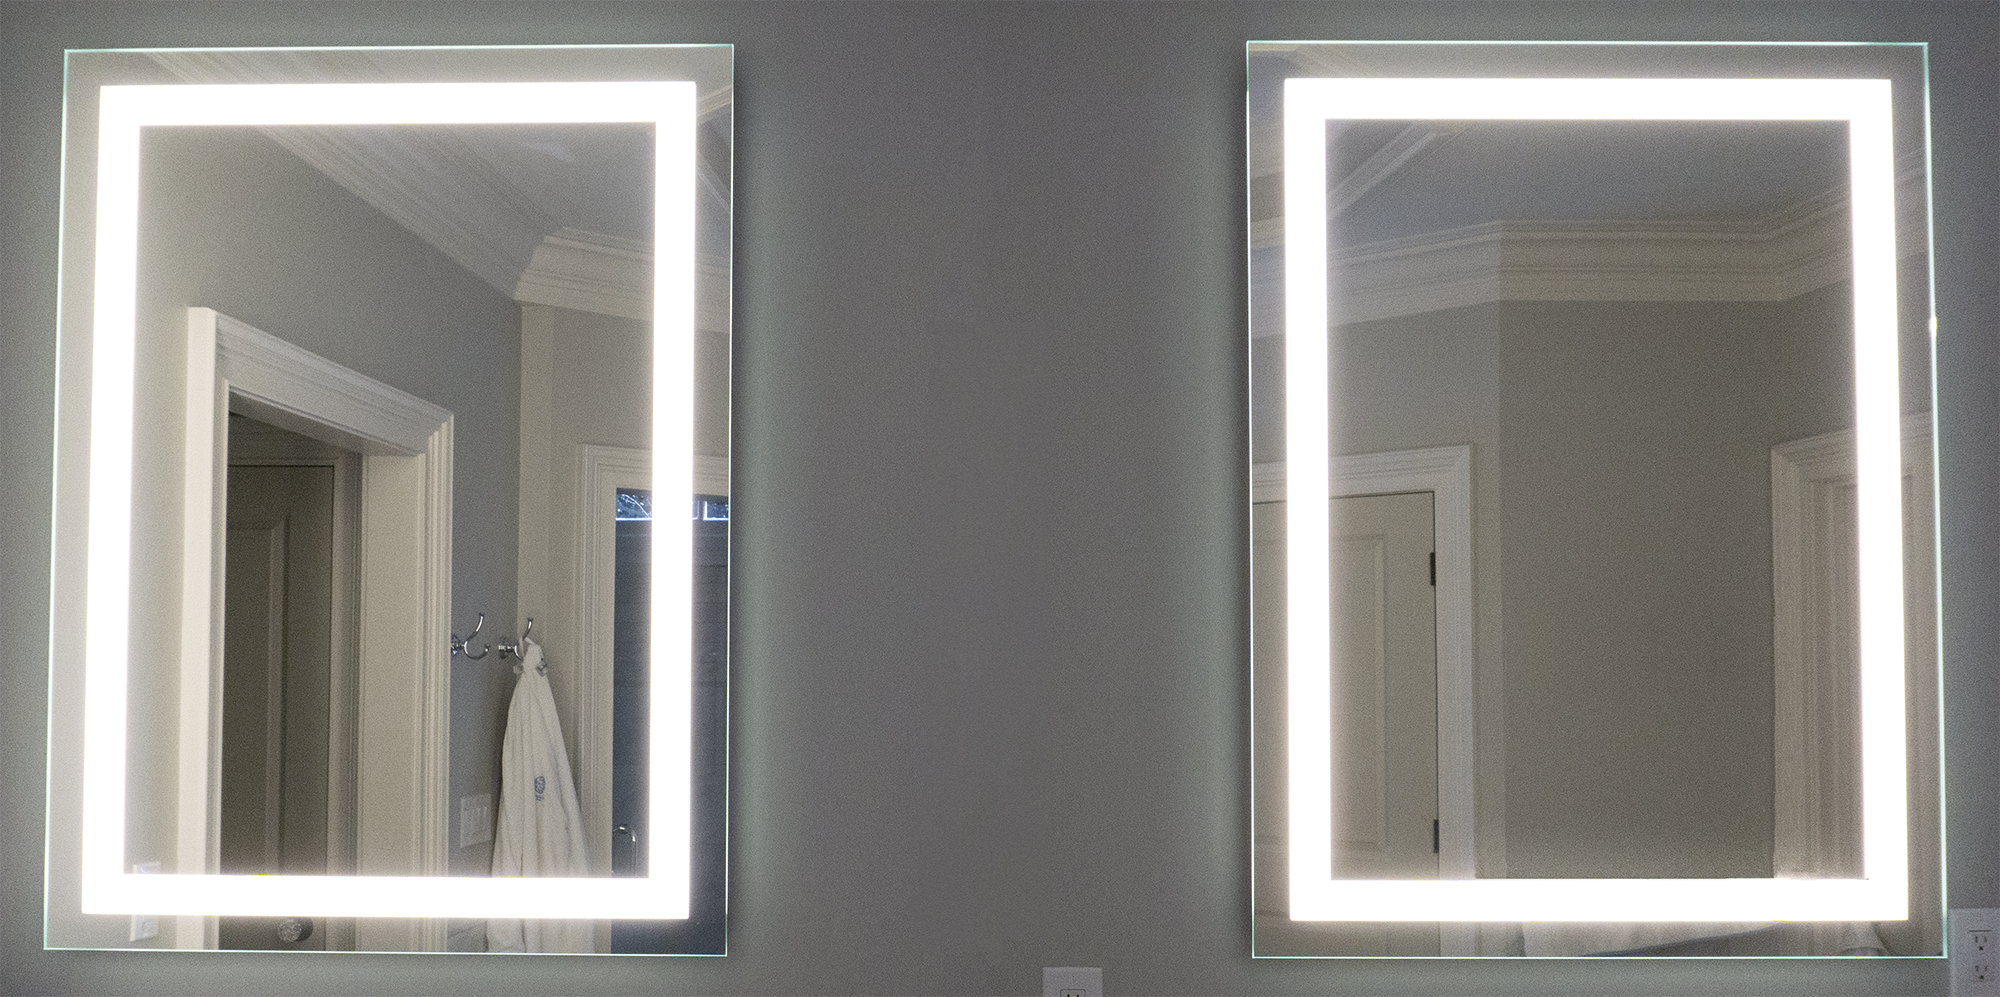 This image shows two Matrix Mirrors L1 model LED mirrors installed in a residential bathroom. The mirrors are direct lit only each having an inset frame of frost. The light shining from the mirrors is a clean, white light reflecting on white walls in the bathroom. A bath robe hangs in the reflection of the left mirror.